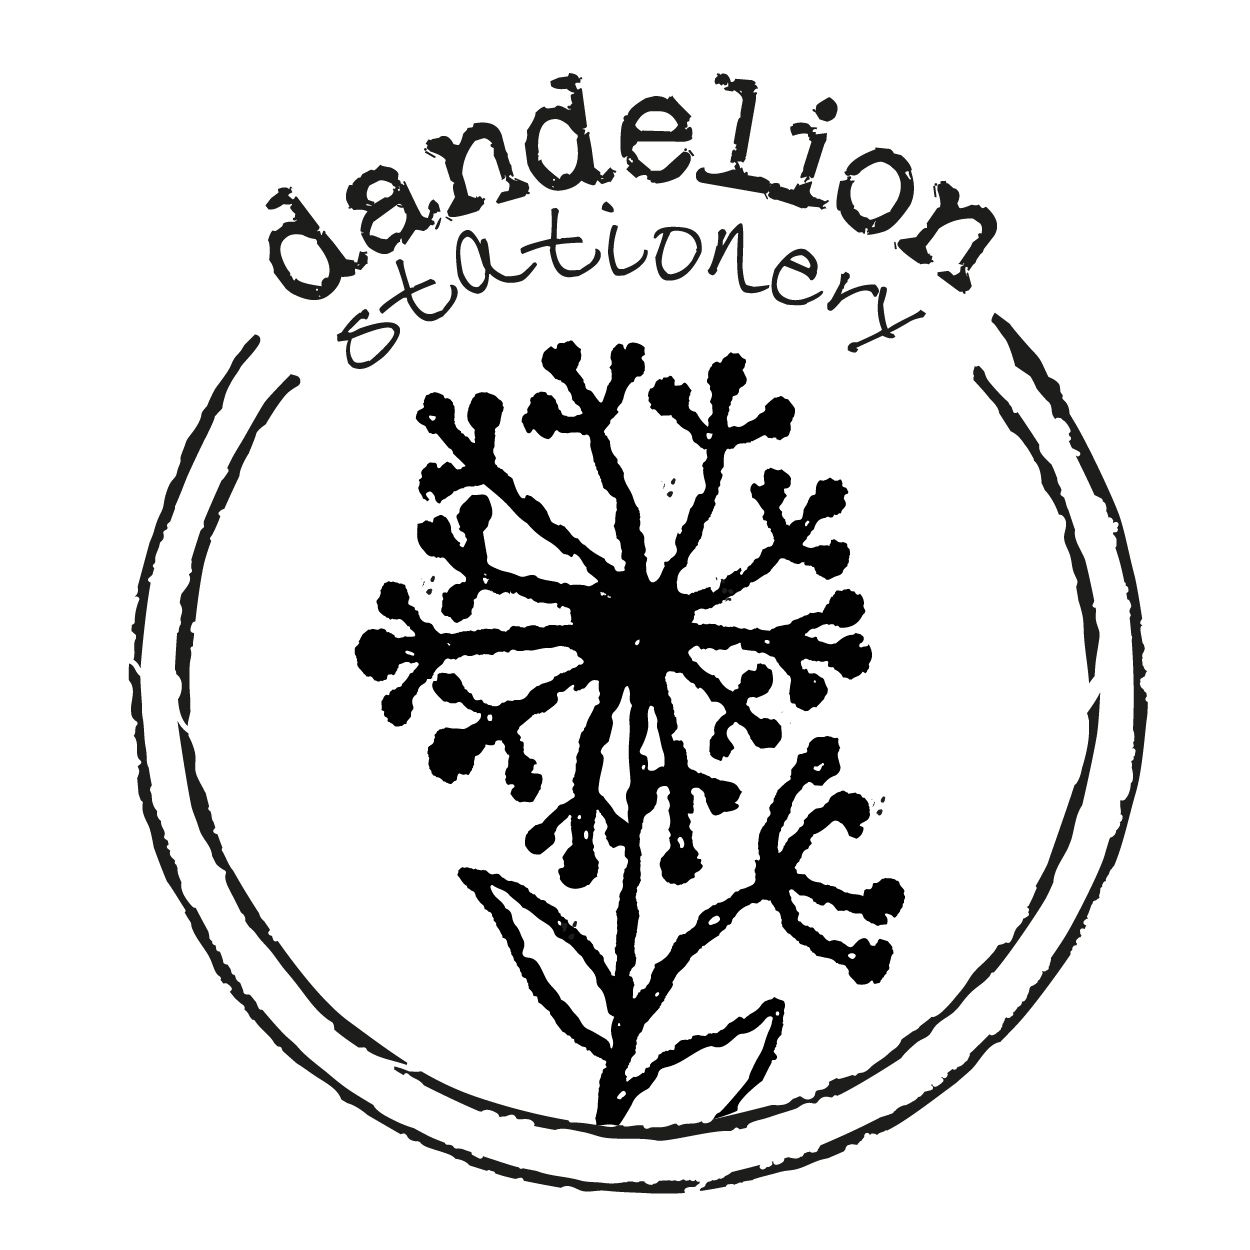 Dandelion Stationery Ltd